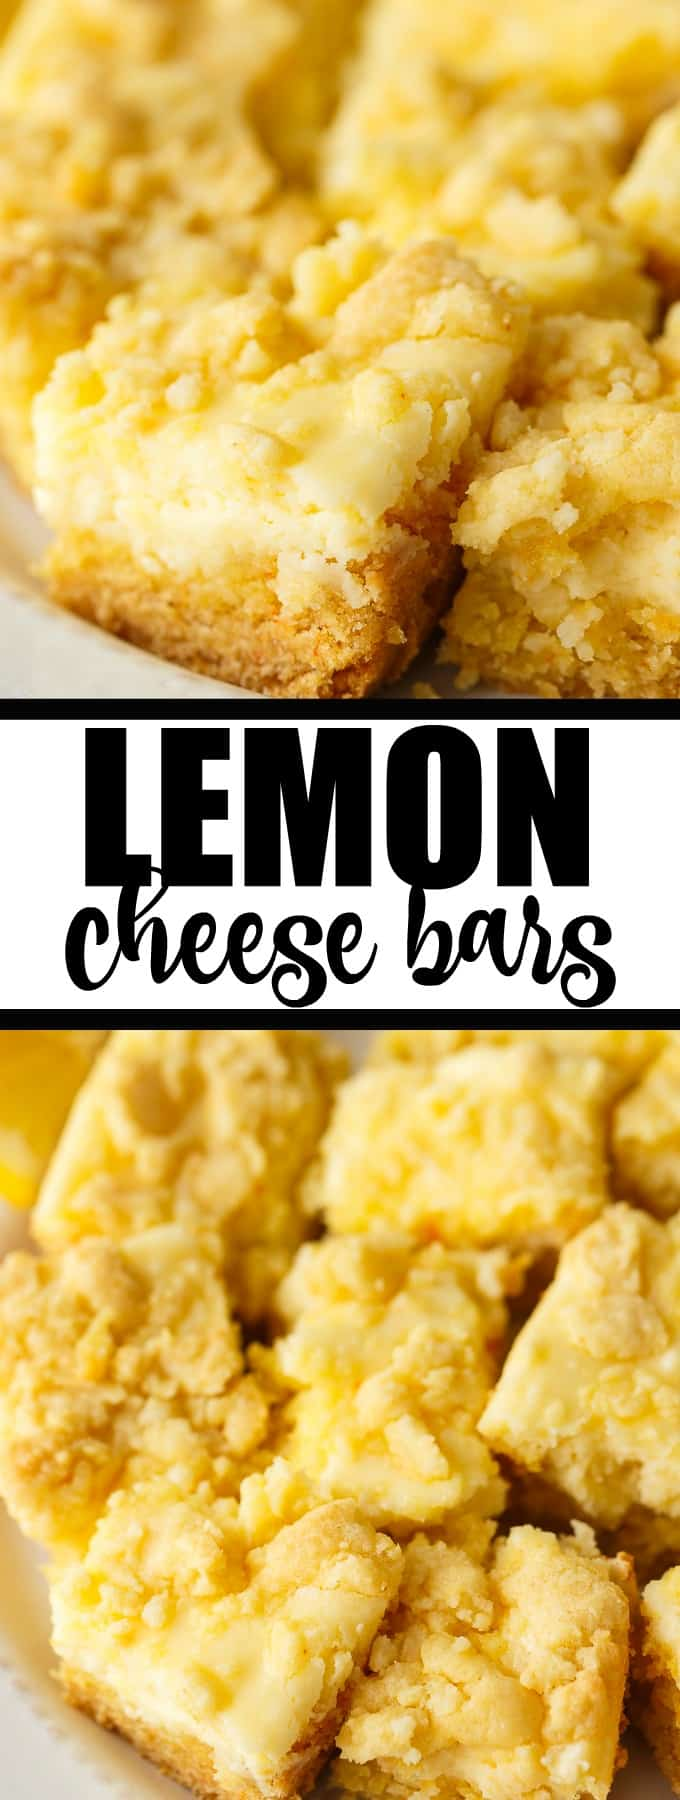 Lemon Cheese Bars - Slightly tart and sweet, this easy dessert is going to be a hit! Save time by using a box of cake mix topped with a lemony cheesecake topping.